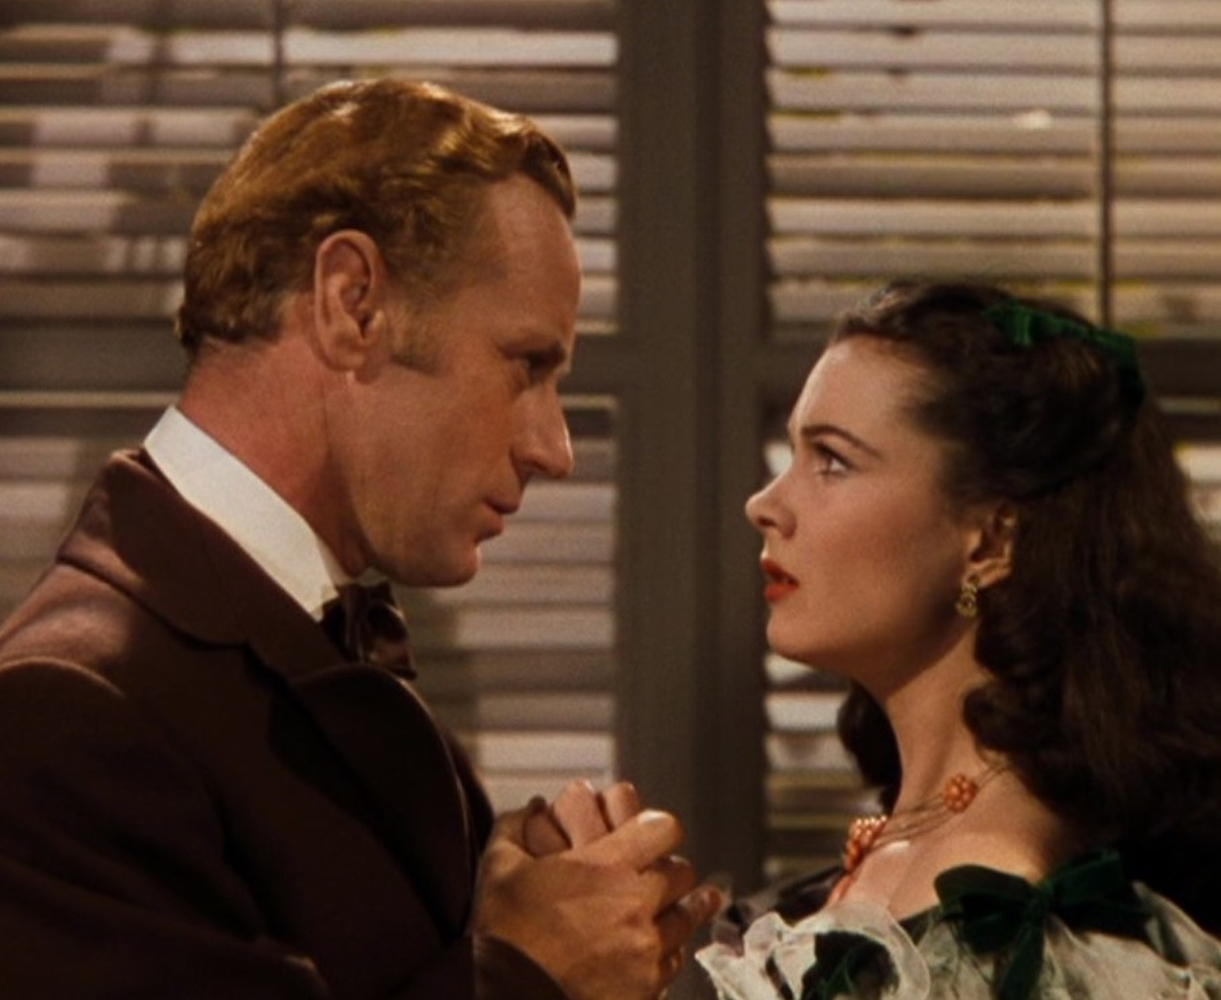 A Vivien Leigh coral necklace worn at the Twelve Oaks barbeque in Gone With the Wind - Image 5 of 5